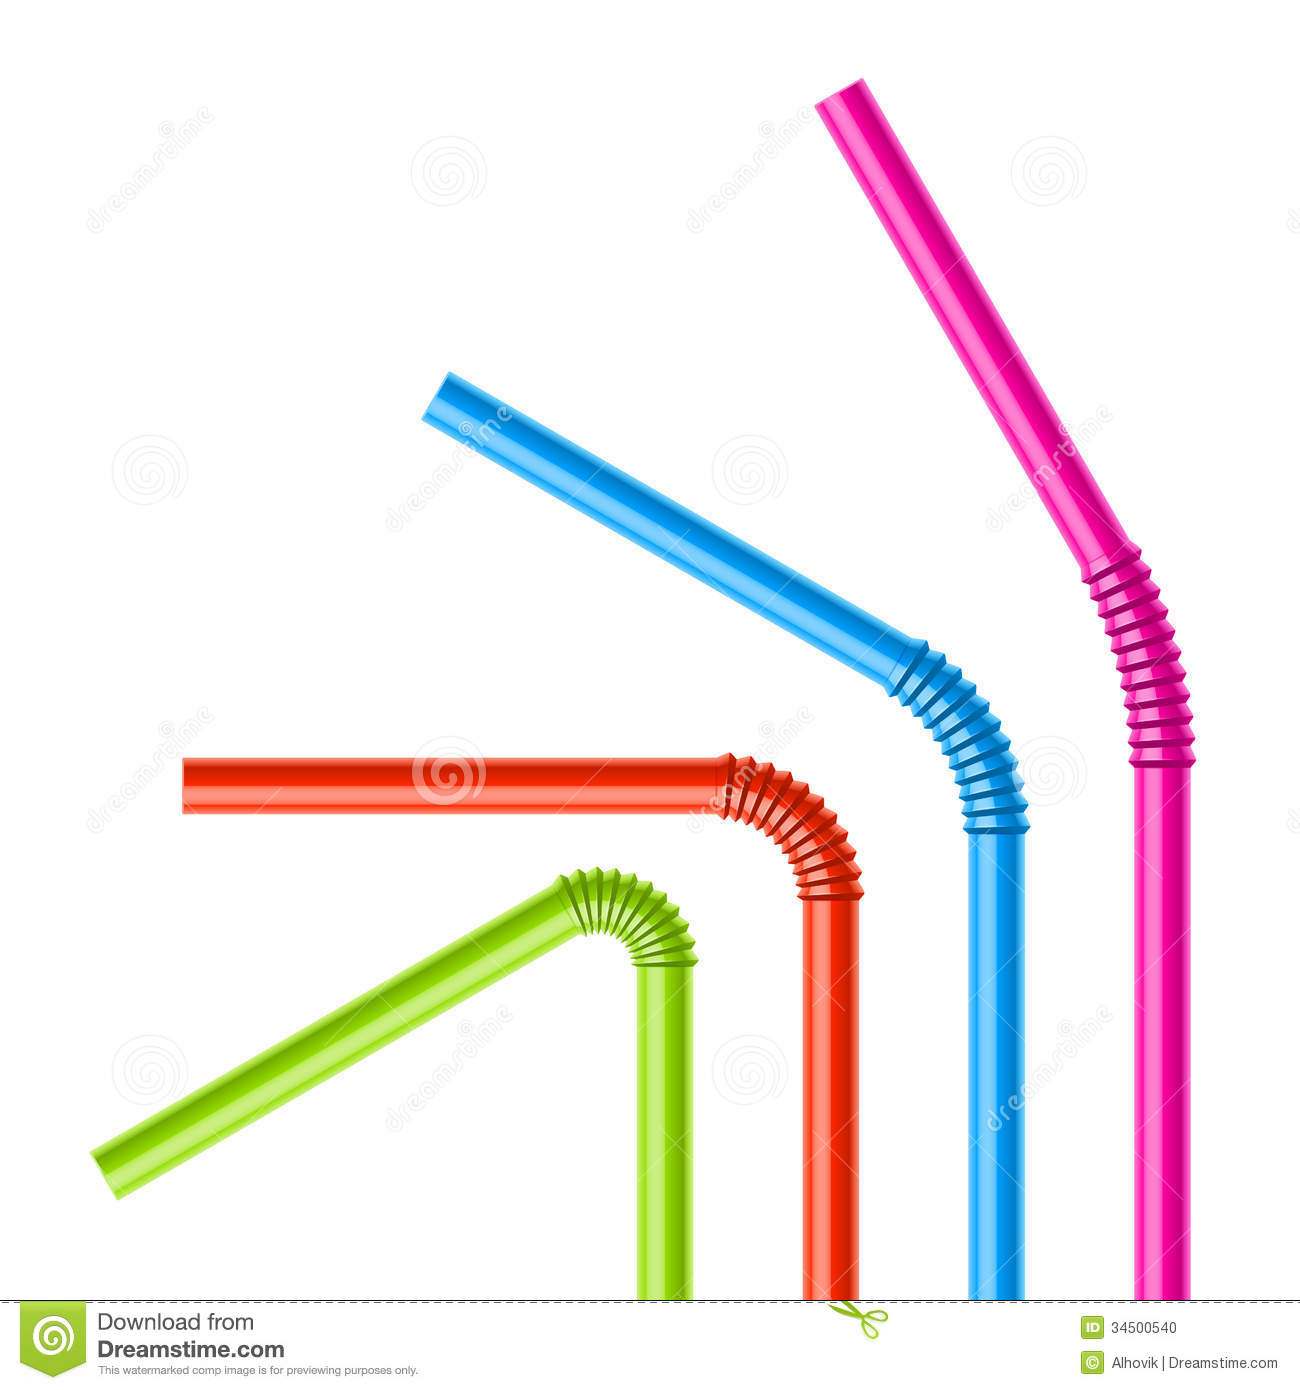 Beverage Drinking Straw Stock Illustrations.